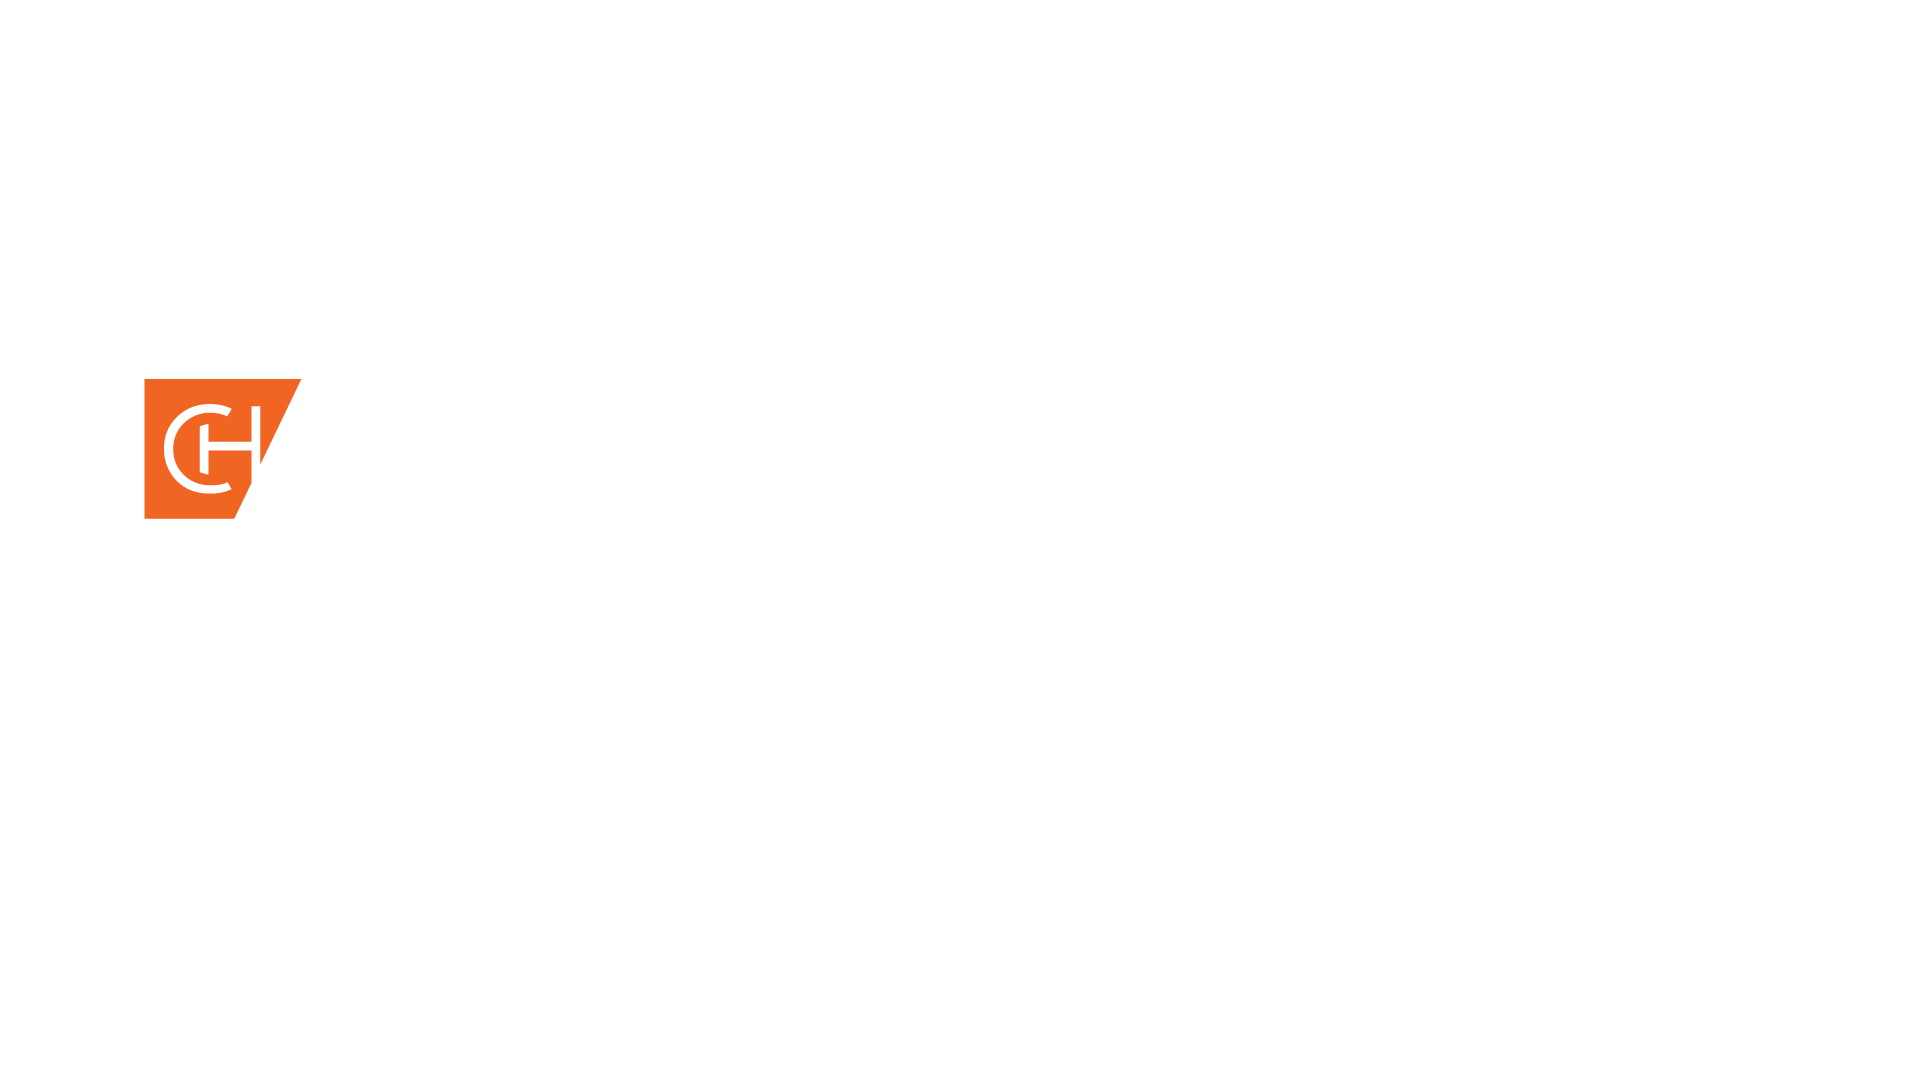 Students_logo.png